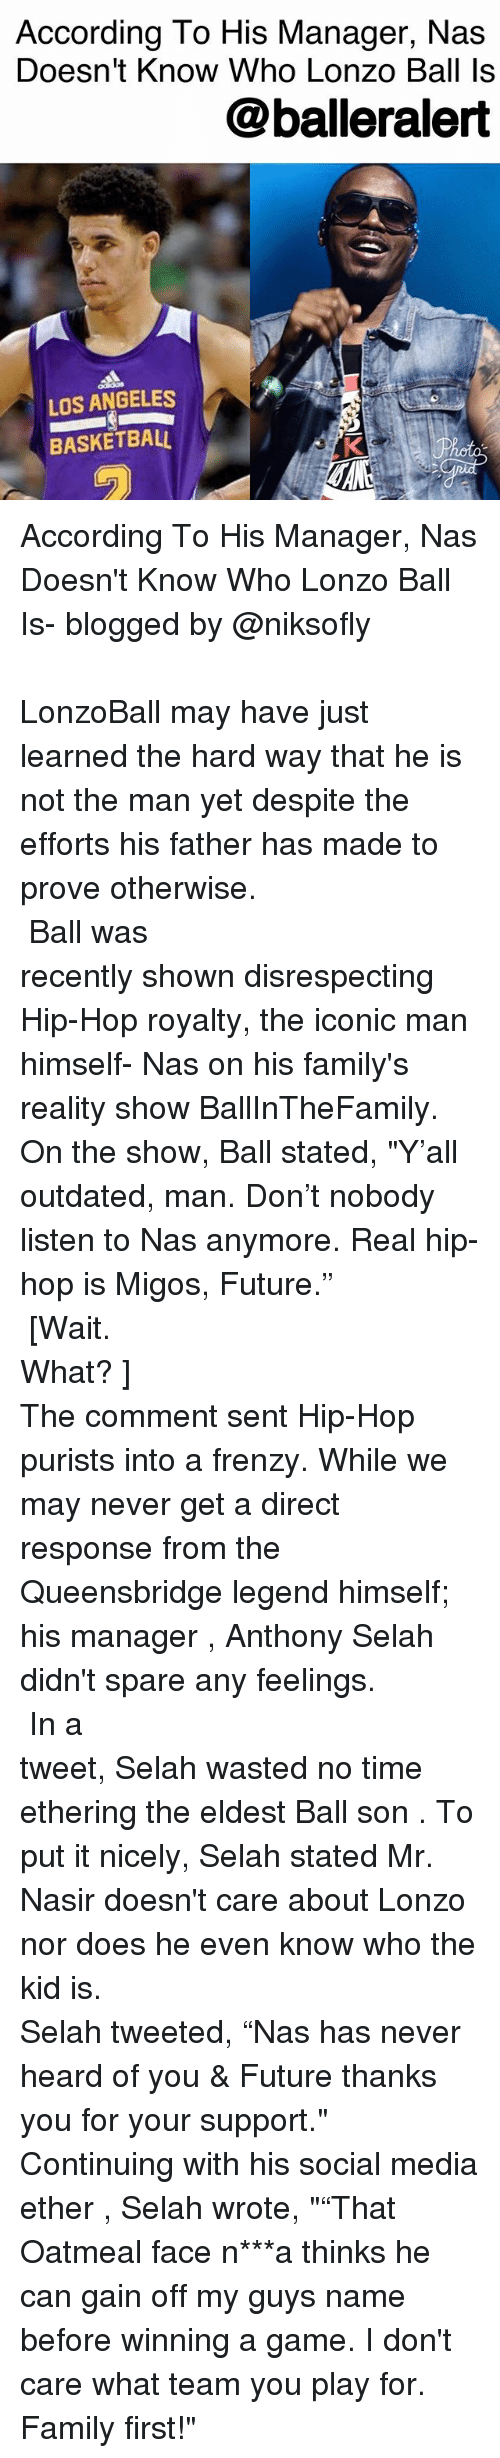 """Senting: According To His Manager, Nas  Doesn't Know Who Lonzo Ball Is  @balleralert  LOS ANGELES  BASKETBALL According To His Manager, Nas Doesn't Know Who Lonzo Ball Is- blogged by @niksofly ⠀⠀⠀⠀⠀⠀⠀⠀⠀⠀⠀⠀⠀⠀⠀⠀⠀⠀⠀⠀⠀⠀⠀⠀⠀⠀⠀⠀⠀⠀⠀⠀⠀⠀⠀⠀ LonzoBall may have just learned the hard way that he is not the man yet despite the efforts his father has made to prove otherwise. ⠀⠀⠀⠀⠀⠀⠀⠀⠀⠀⠀⠀⠀⠀⠀⠀⠀⠀⠀⠀⠀⠀⠀⠀⠀⠀⠀⠀⠀⠀⠀⠀⠀⠀⠀⠀ Ball was recently shown disrespecting Hip-Hop royalty, the iconic man himself- Nas on his family's reality show BallInTheFamily. On the show, Ball stated, """"Y'all outdated, man. Don't nobody listen to Nas anymore. Real hip-hop is Migos, Future."""" ⠀⠀⠀⠀⠀⠀⠀⠀⠀⠀⠀⠀⠀⠀⠀⠀⠀⠀⠀⠀⠀⠀⠀⠀⠀⠀⠀⠀⠀⠀⠀⠀⠀⠀⠀⠀ [Wait. What? ] ⠀⠀⠀⠀⠀⠀⠀⠀⠀⠀⠀⠀⠀⠀⠀⠀⠀⠀⠀⠀⠀⠀⠀⠀⠀⠀⠀⠀⠀⠀⠀⠀⠀⠀⠀⠀ The comment sent Hip-Hop purists into a frenzy. While we may never get a direct response from the Queensbridge legend himself; his manager , Anthony Selah didn't spare any feelings. ⠀⠀⠀⠀⠀⠀⠀⠀⠀⠀⠀⠀⠀⠀⠀⠀⠀⠀⠀⠀⠀⠀⠀⠀⠀⠀⠀⠀⠀⠀⠀⠀⠀⠀⠀⠀ In a tweet, Selah wasted no time ethering the eldest Ball son . To put it nicely, Selah stated Mr. Nasir doesn't care about Lonzo nor does he even know who the kid is. ⠀⠀⠀⠀⠀⠀⠀⠀⠀⠀⠀⠀⠀⠀⠀⠀⠀⠀⠀⠀⠀⠀⠀⠀⠀⠀⠀⠀⠀⠀⠀⠀⠀⠀⠀⠀ Selah tweeted, """"Nas has never heard of you & Future thanks you for your support."""" Continuing with his social media ether , Selah wrote, """"""""That Oatmeal face n***a thinks he can gain off my guys name before winning a game. I don't care what team you play for. Family first!"""""""